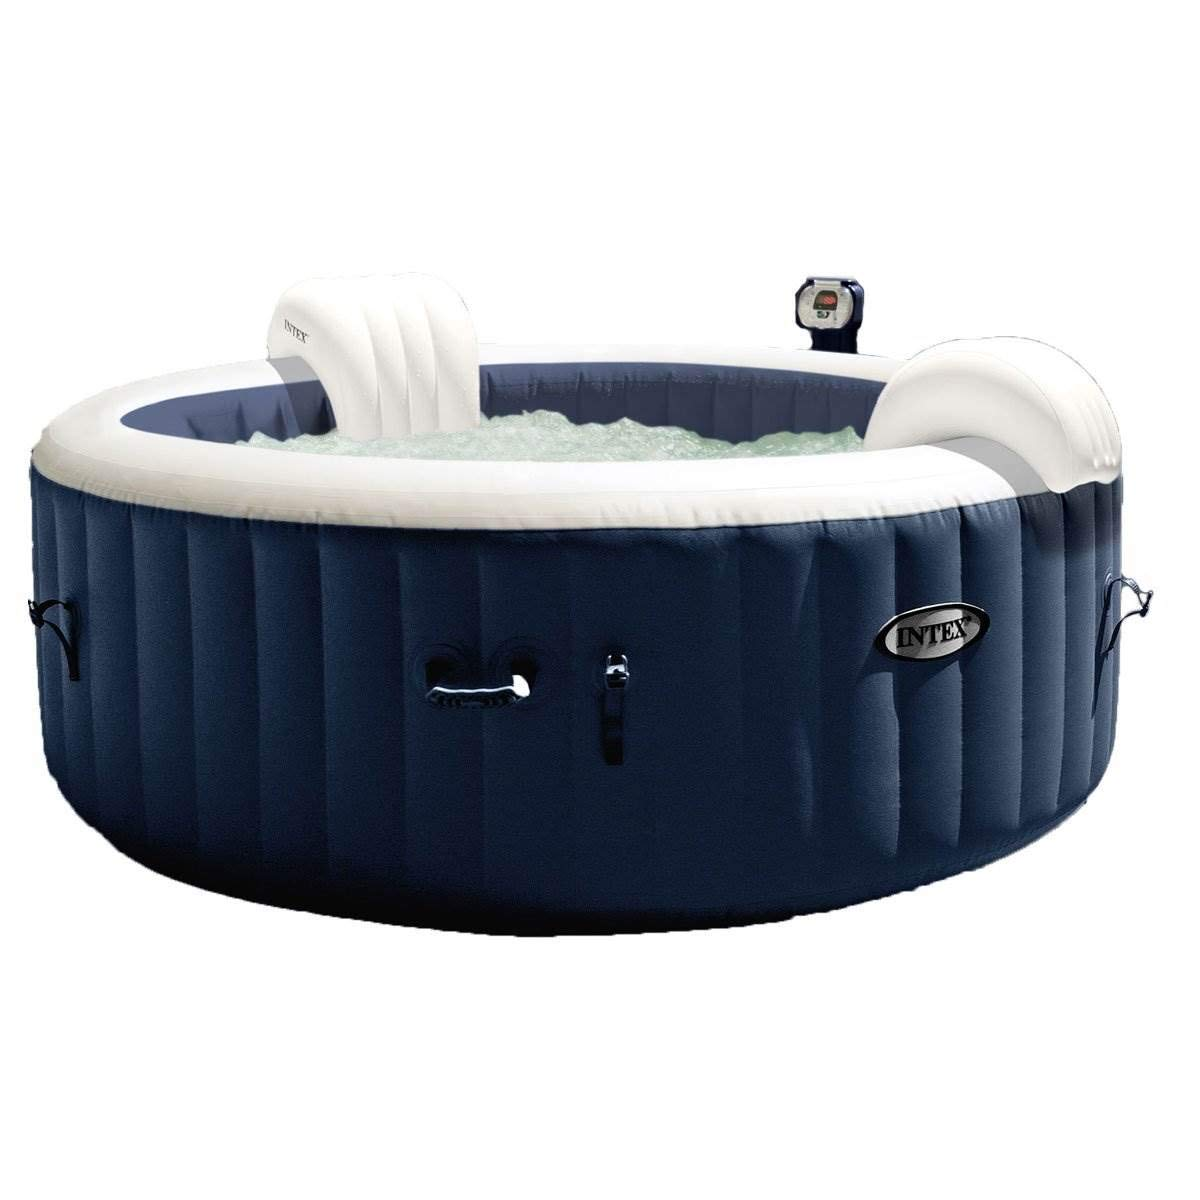 Amazon.com: Intex Pure Spa inflable 4 personas jacuzzi y ...